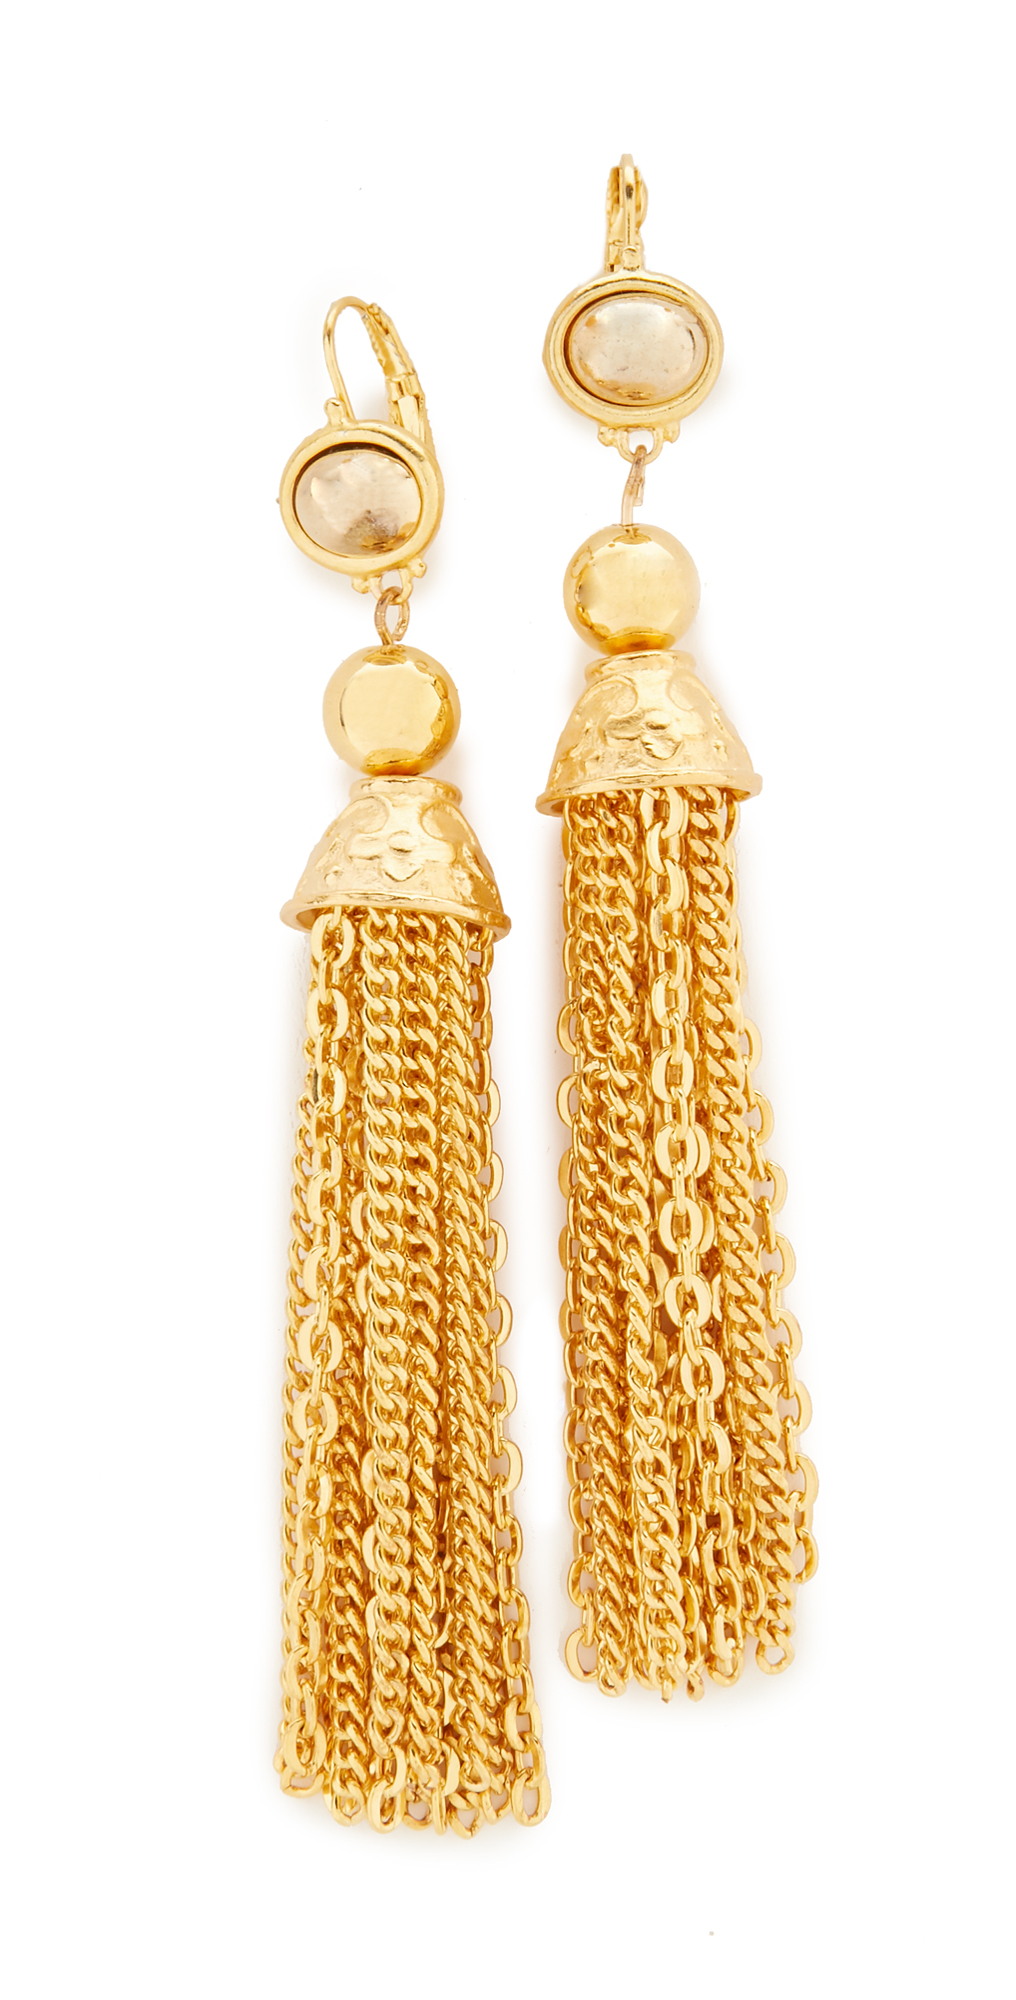 Chain Tassel Earrings Kenneth Jay Lane